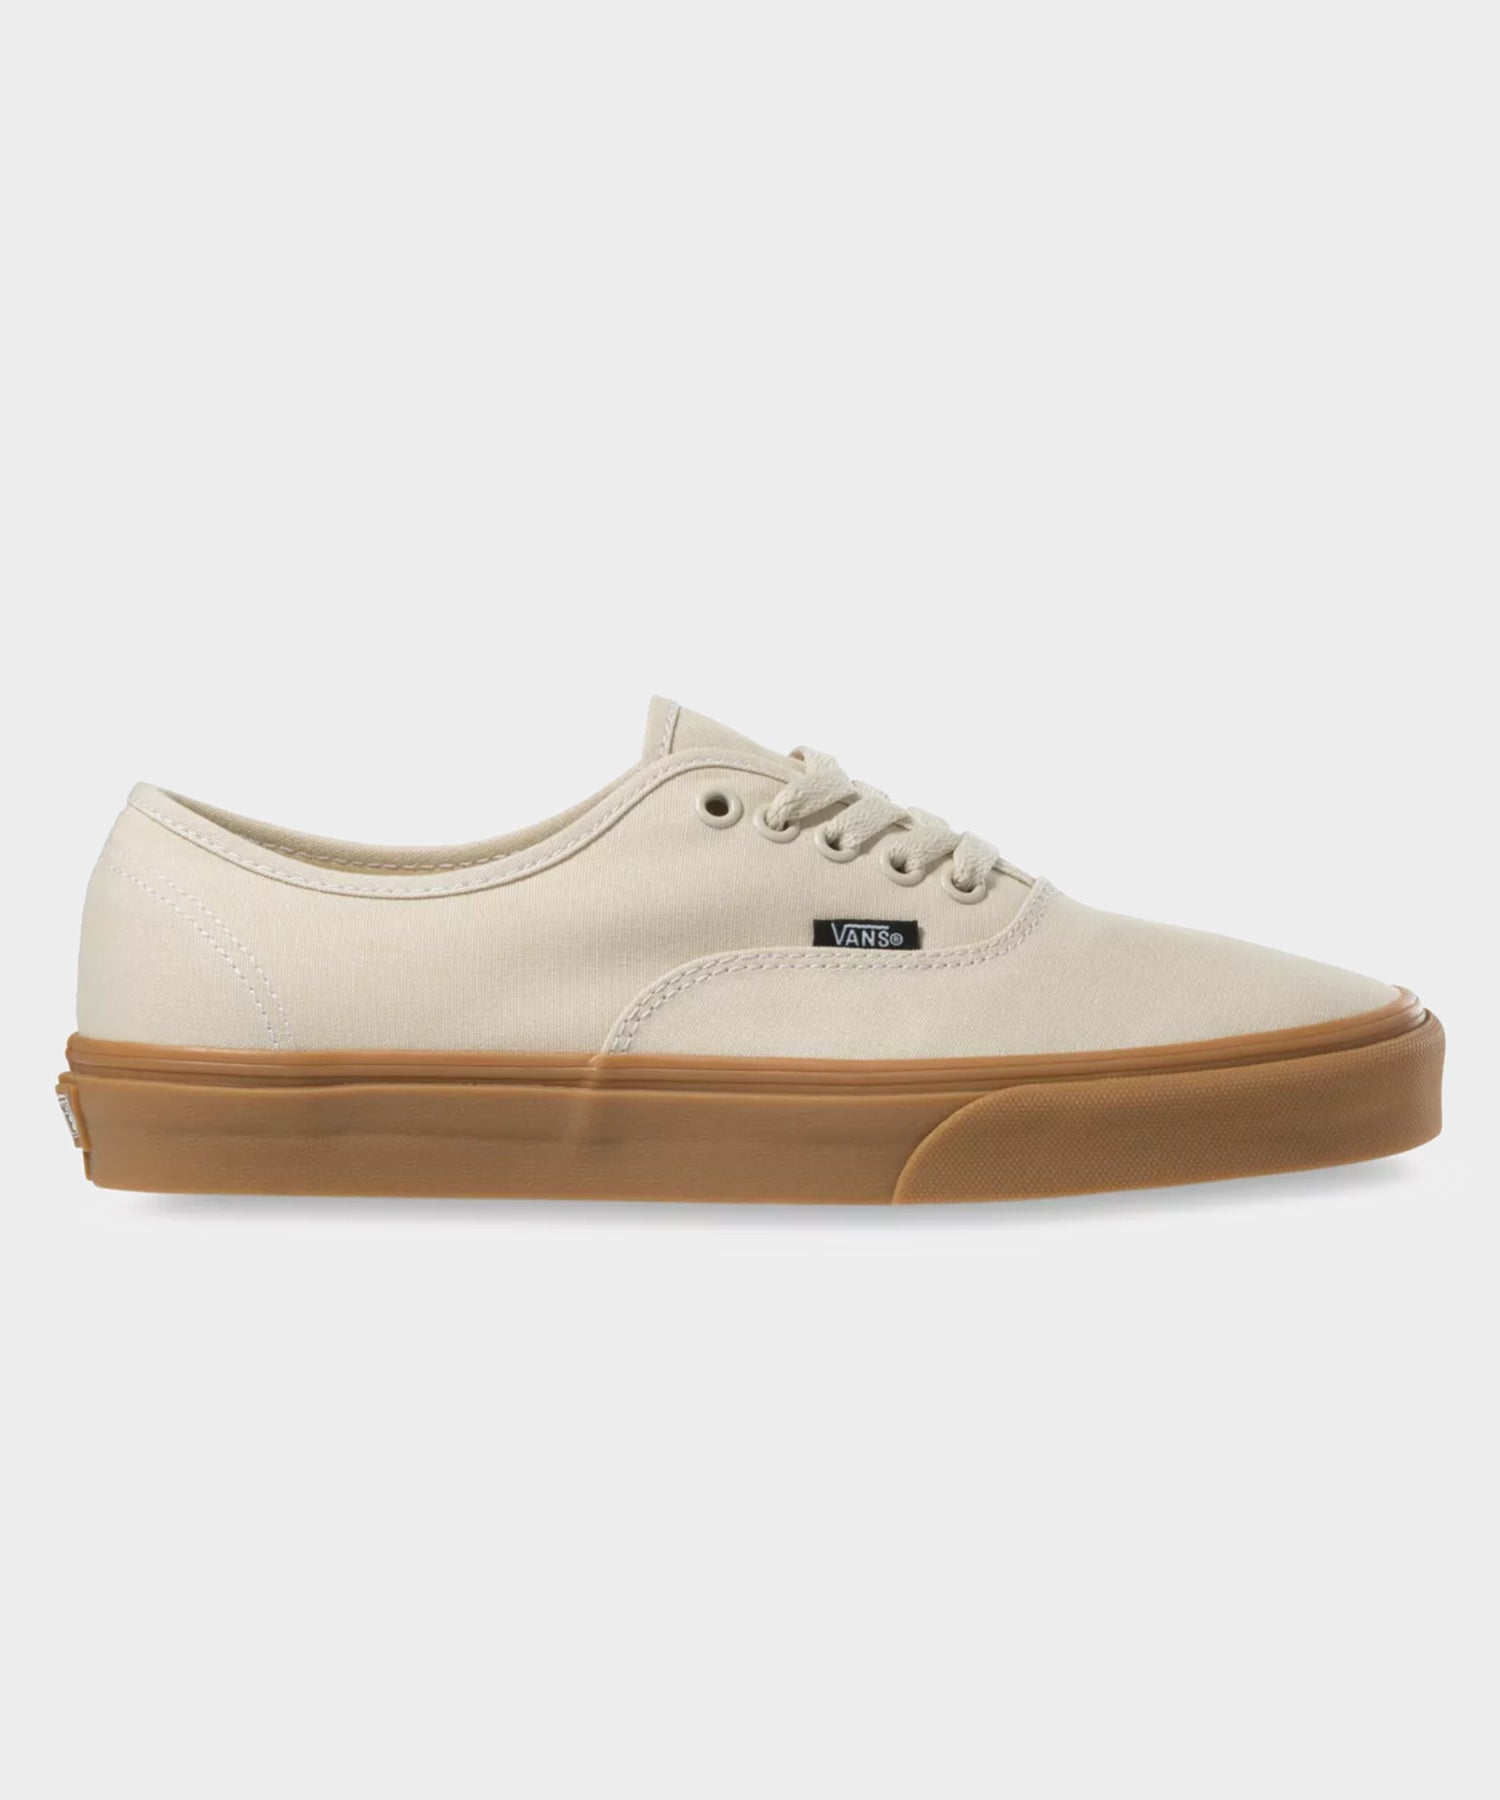 Vans Gum Authentic in Oatmeal